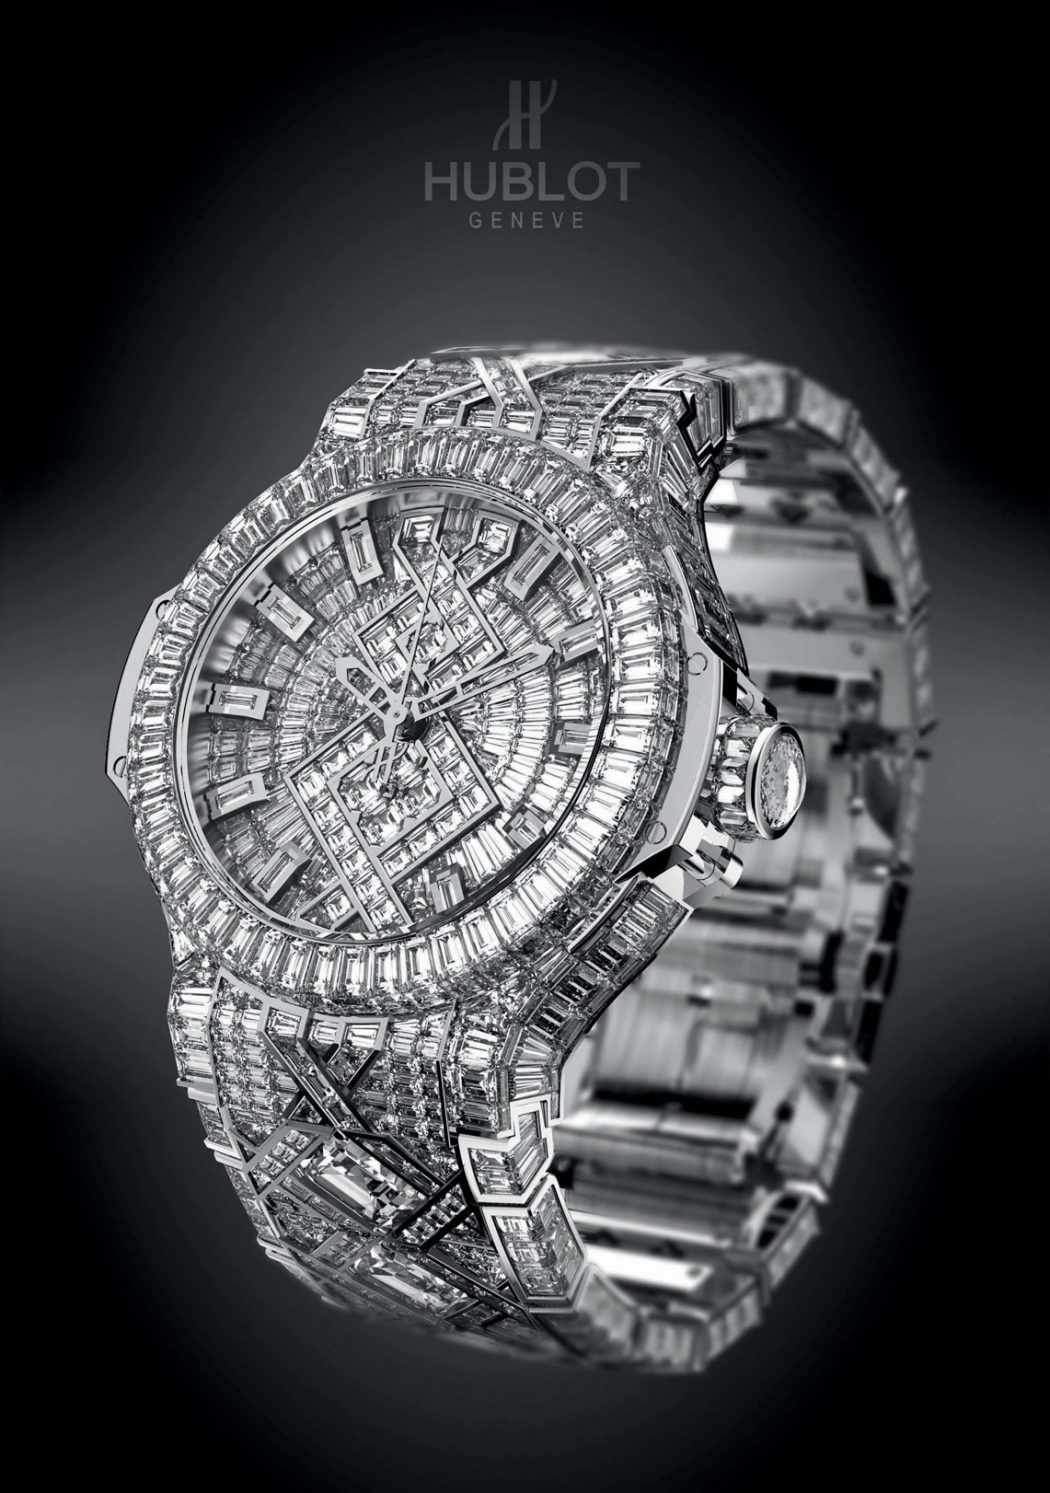 most_expensive_watch_Hublot 11 Most Expensive Diamond Watches